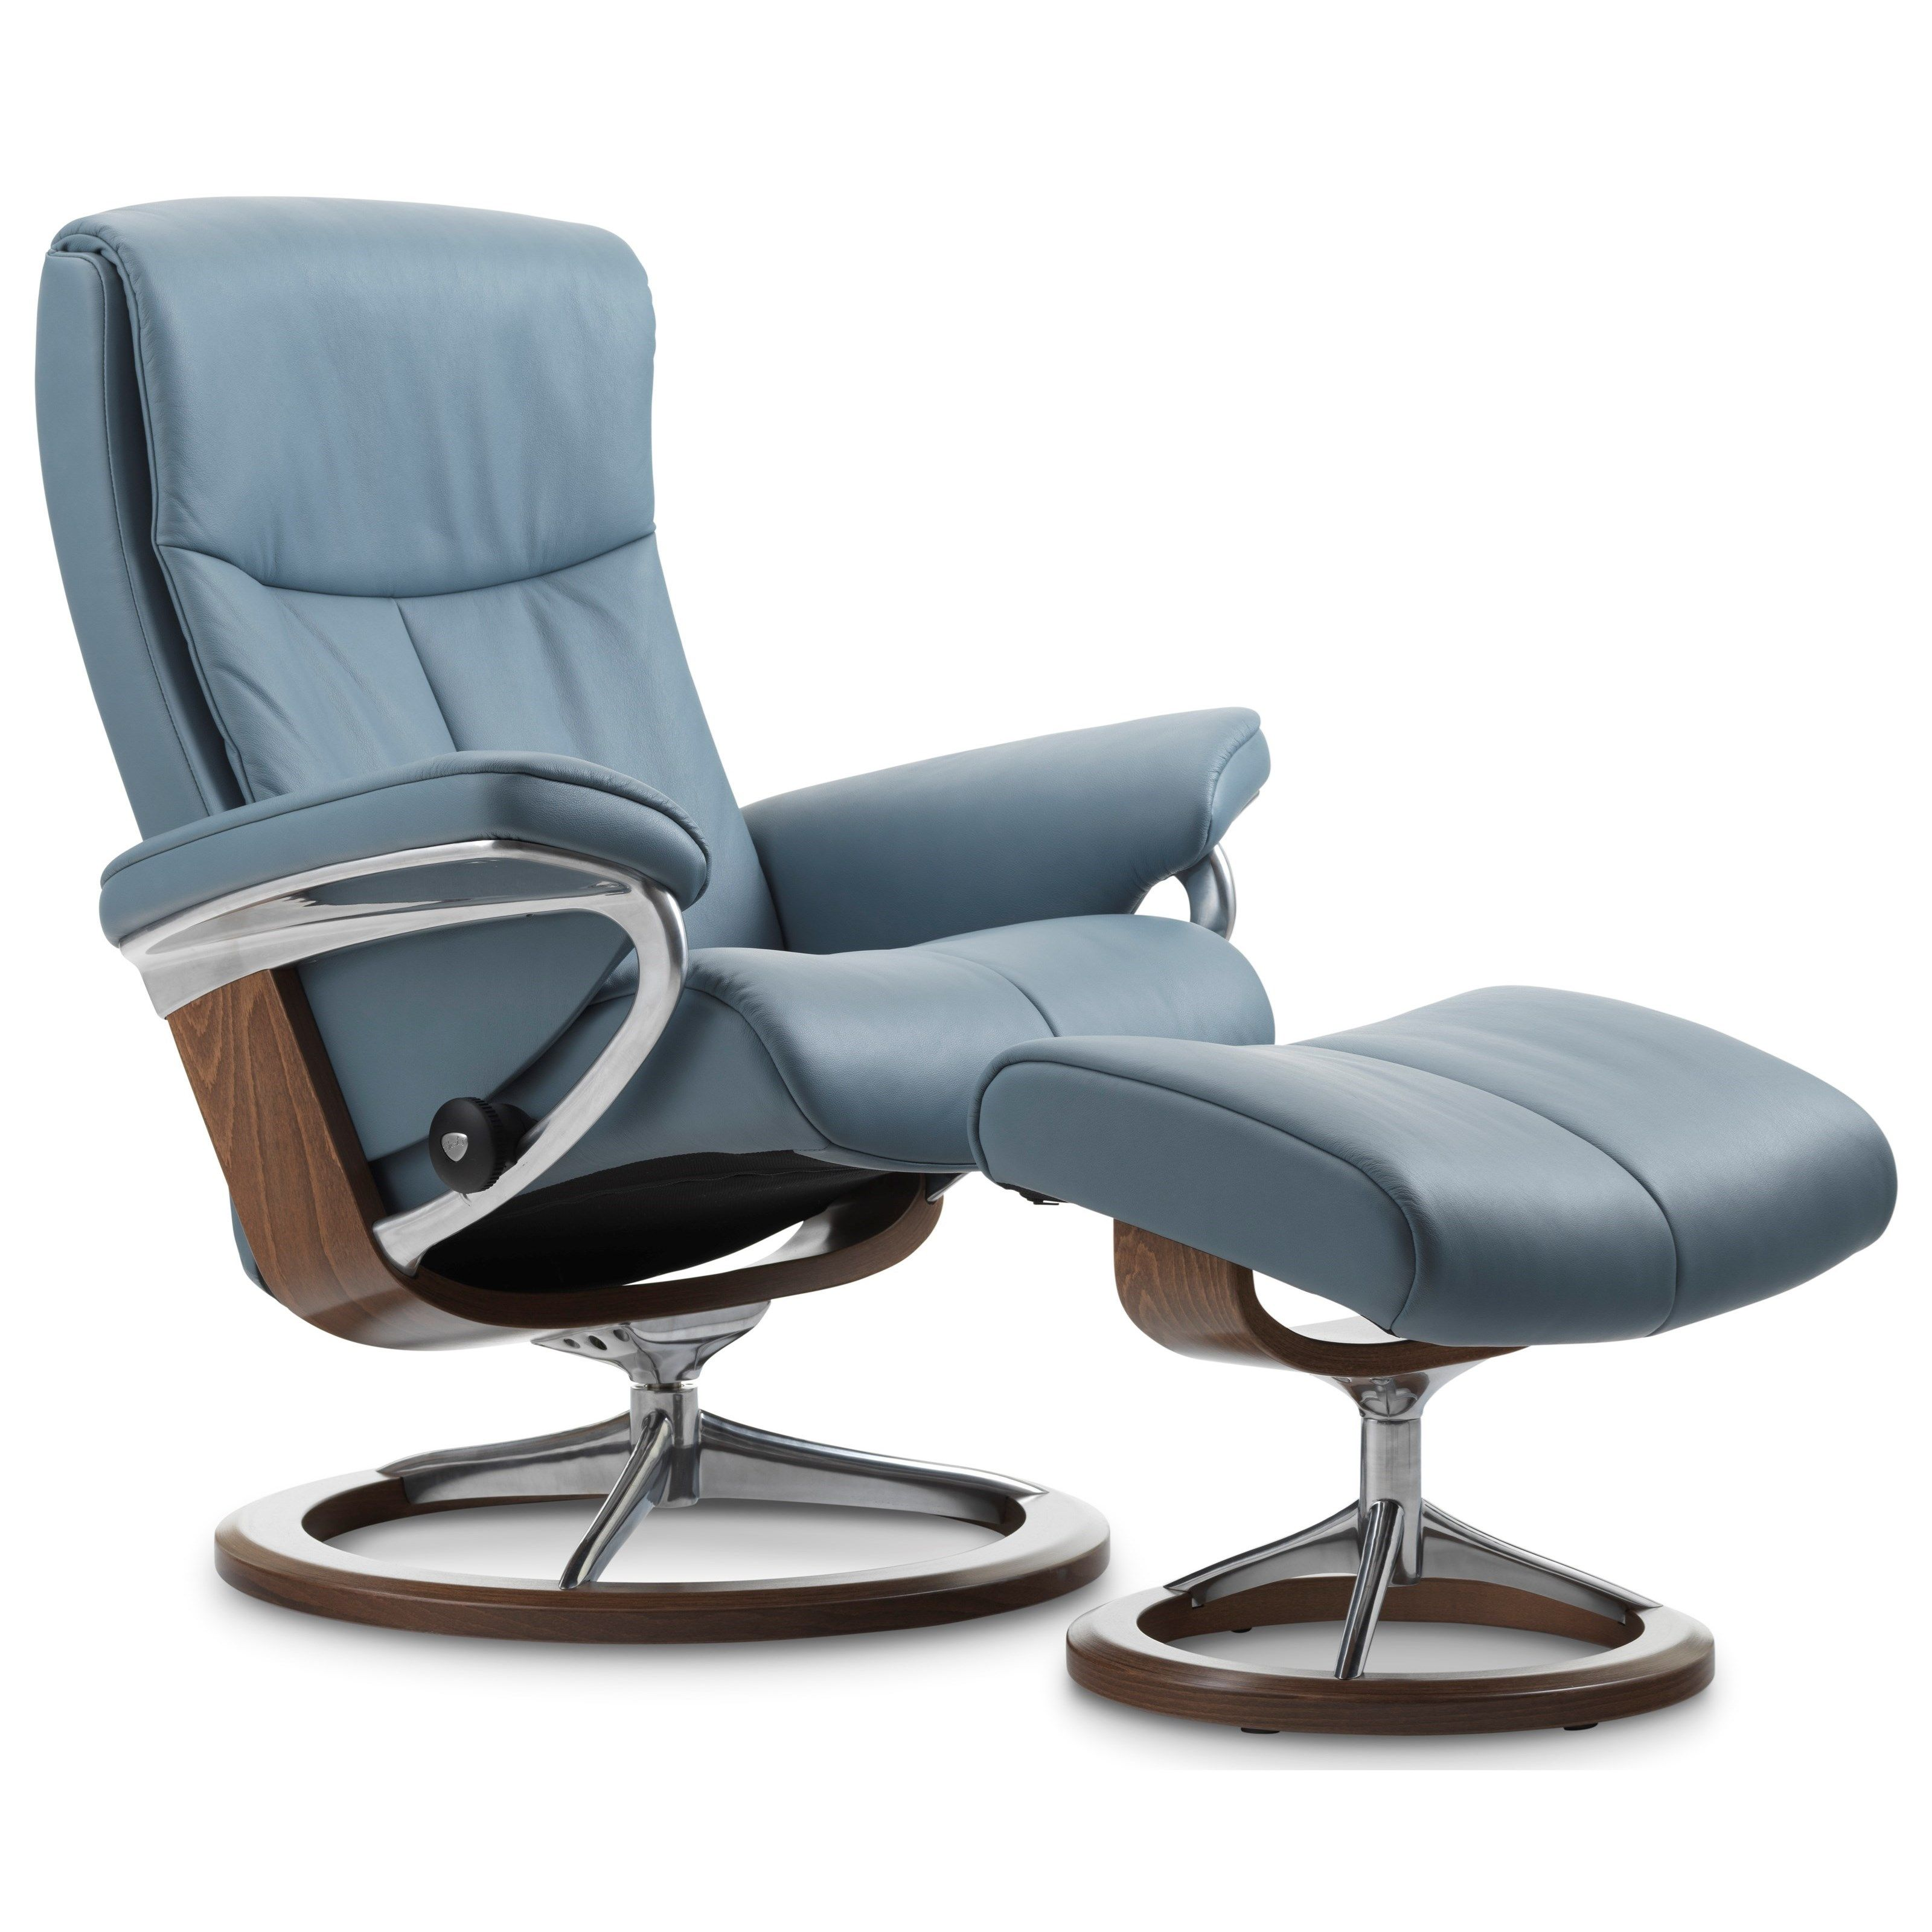 Stressless Ekornes Fauteuils.Stressless Peace Large Signature Chair By Stressless By